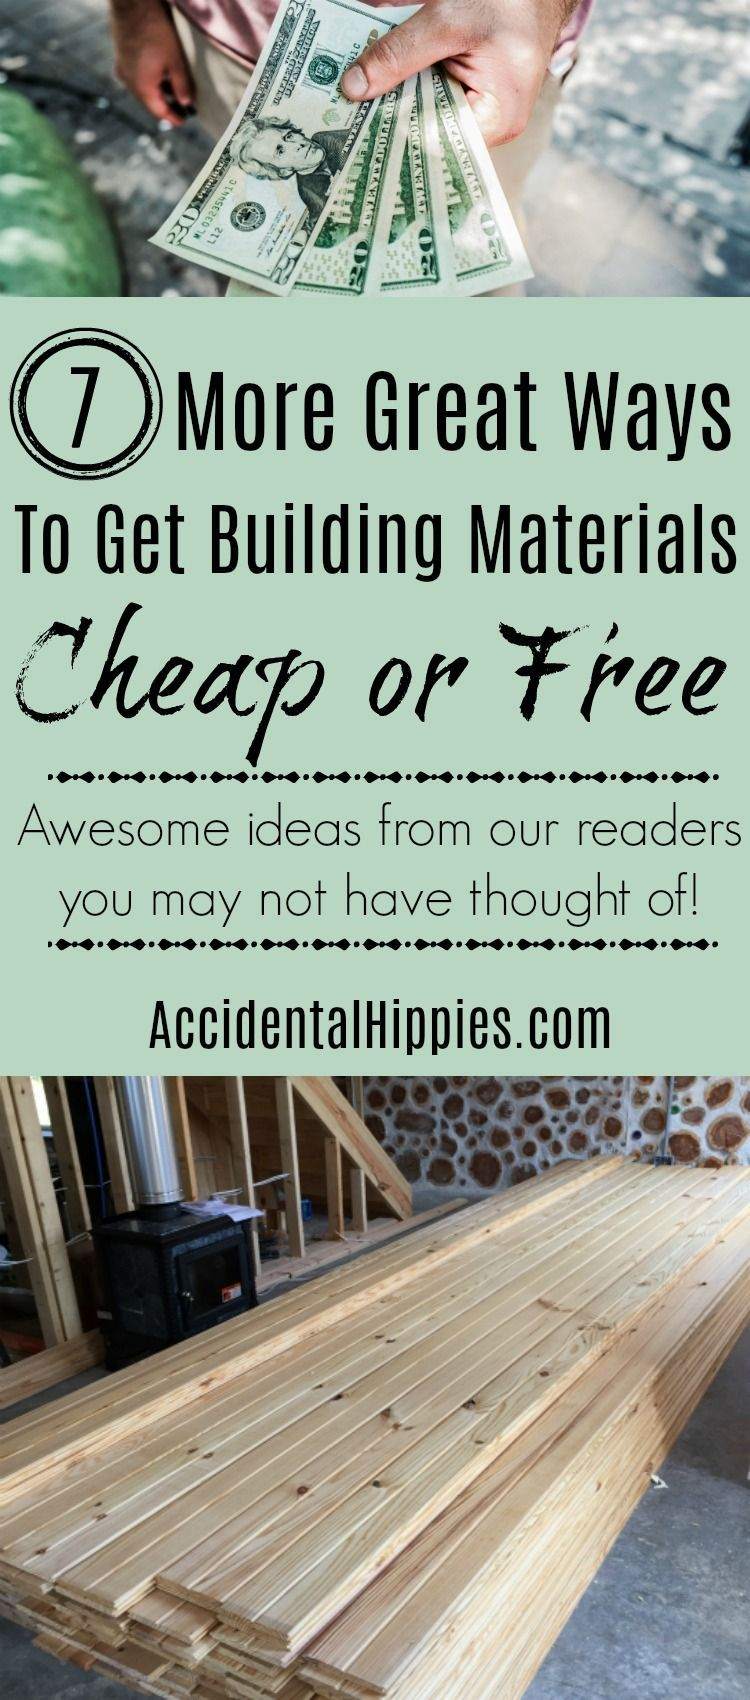 7 More Awesome Ways To Save Money On Building Supplies Accidental Hippies In 2020 Home Building Tips Building Materials Saving Money